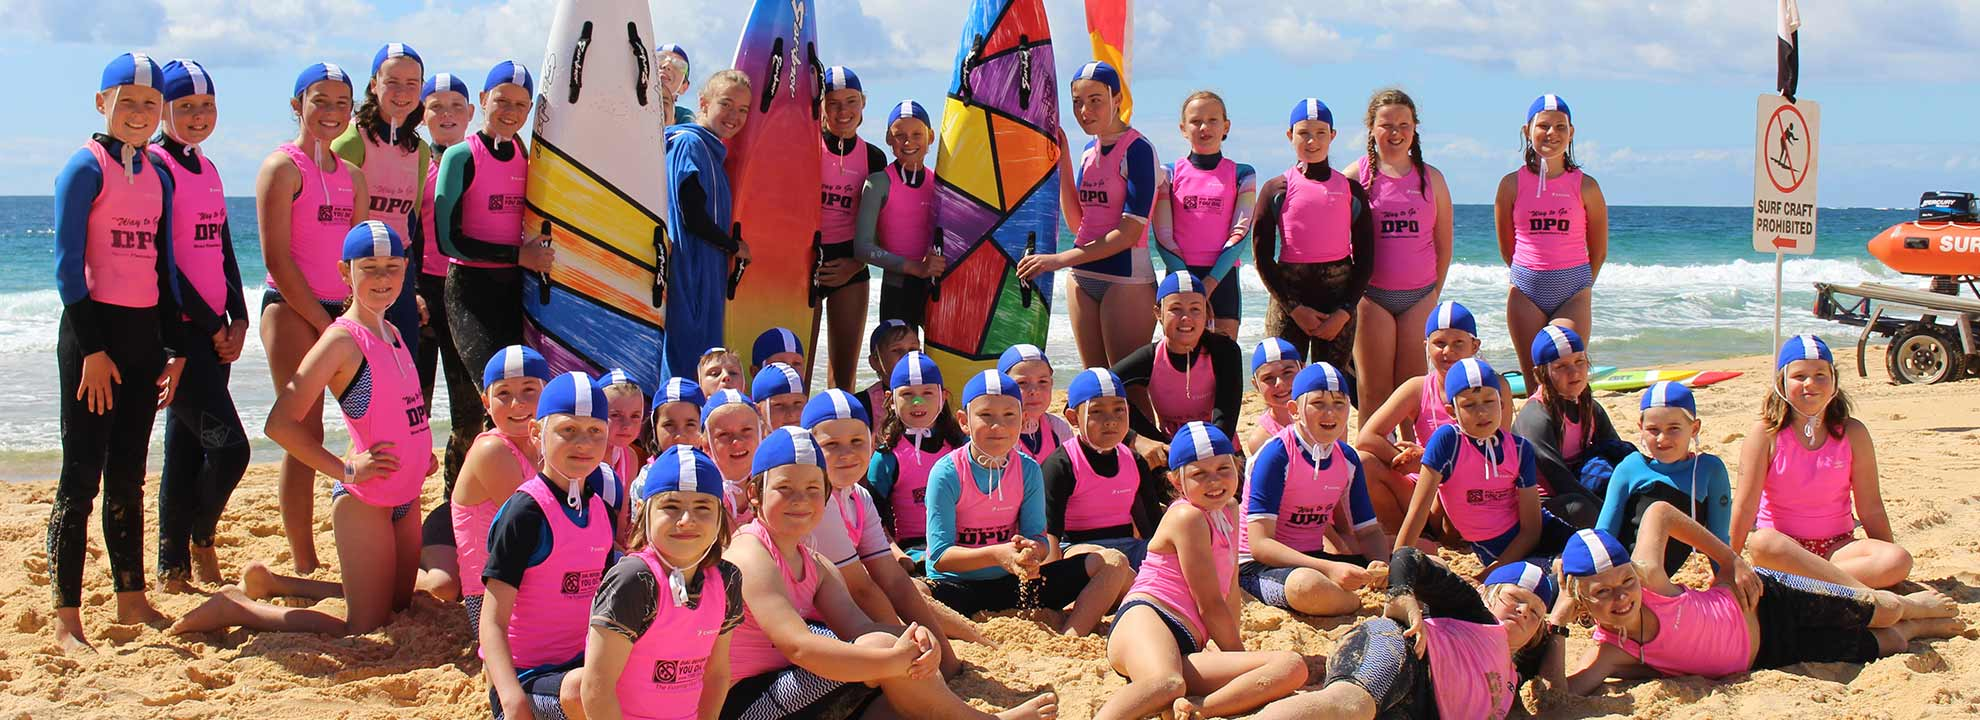 Moruya Surf Lifesaving Club